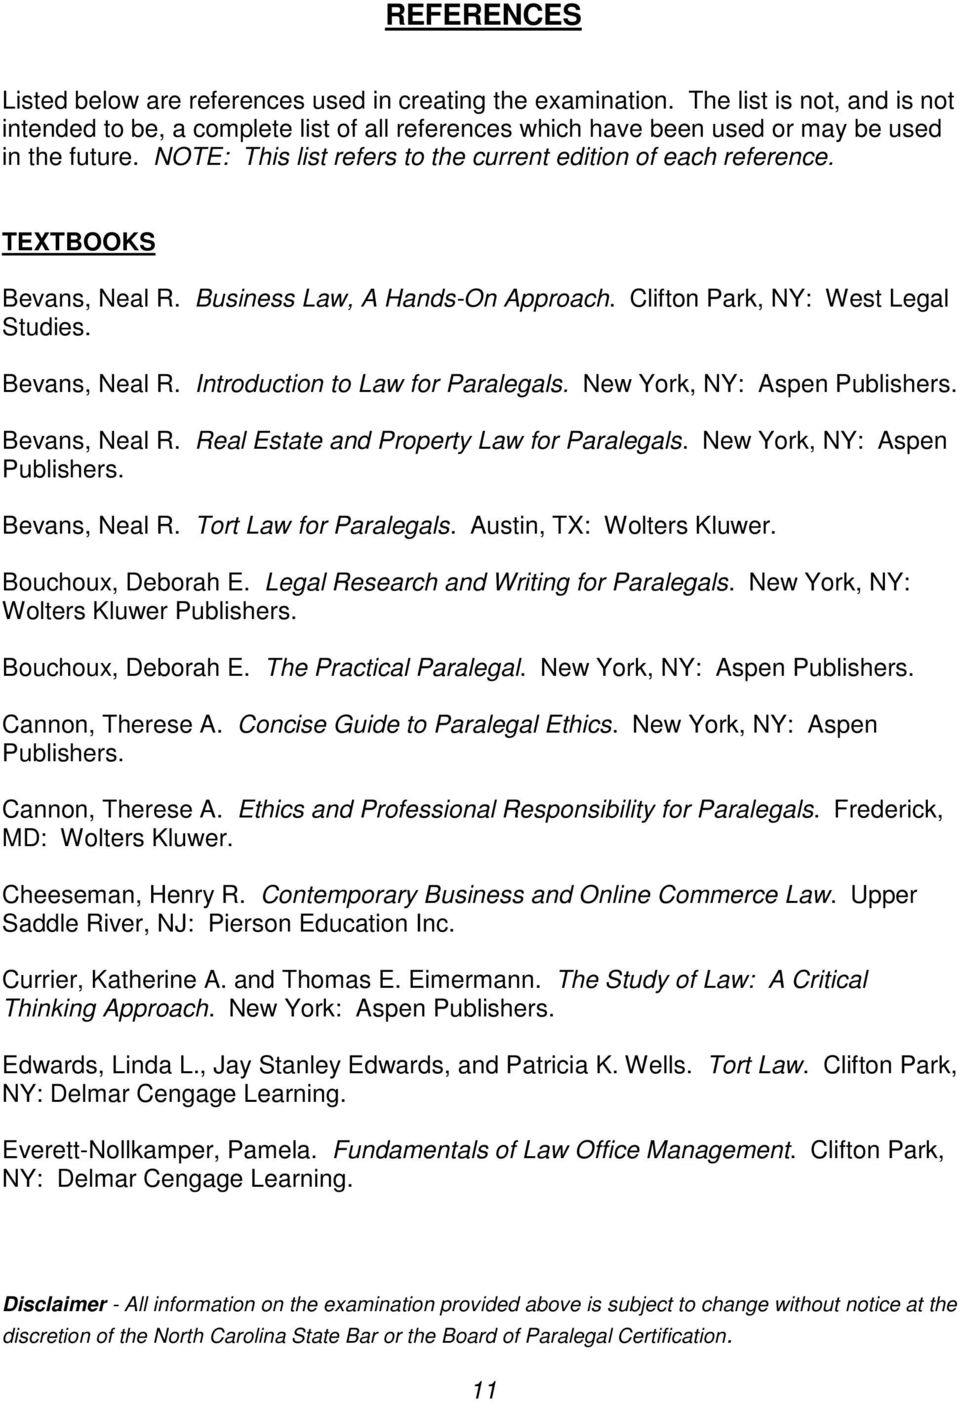 TEXTBOOKS Bevans, Neal R. Business Law, A Hands-On Approach. Clifton Park, NY: West Legal Studies. Bevans, Neal R. Introduction to Law for Paralegals. New York, NY: Aspen Publishers. Bevans, Neal R. Real Estate and Property Law for Paralegals.